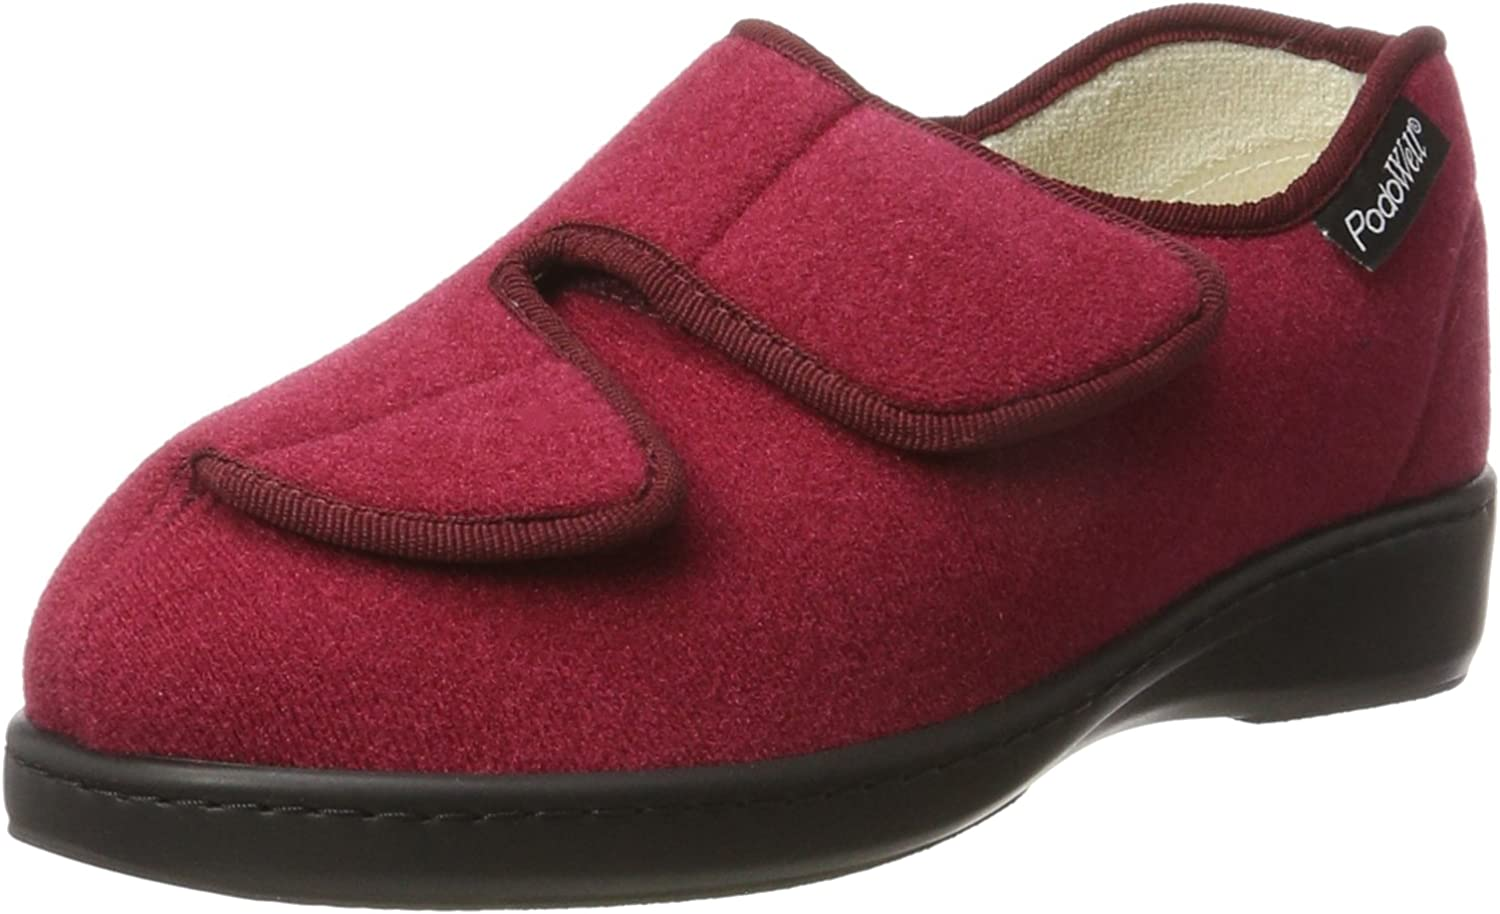 PodoWell Unisex Adults' Athos Low-Top Slippers